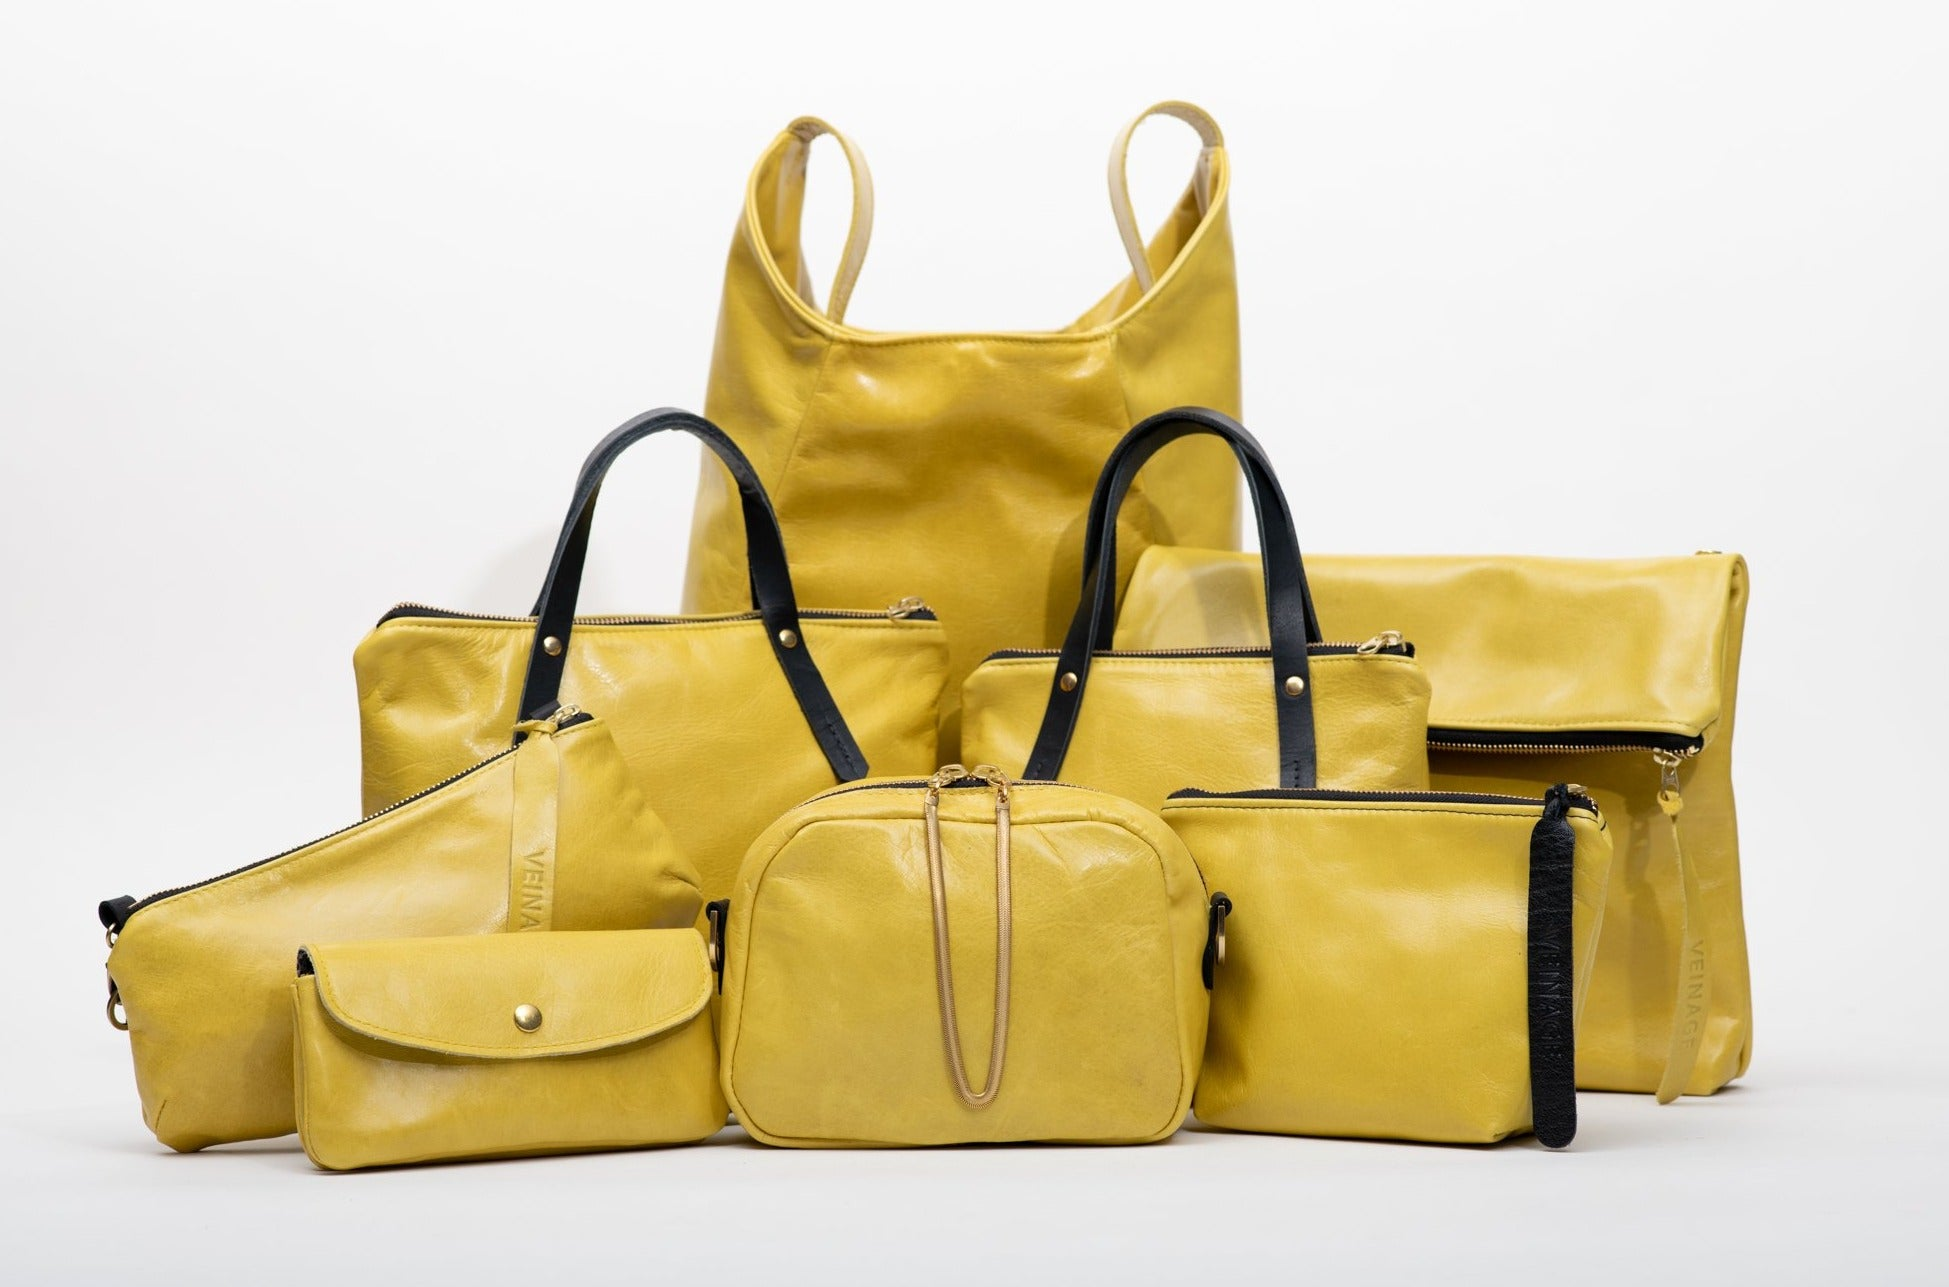 Geometrical yellow leather tote bag MONT-ROYAL model